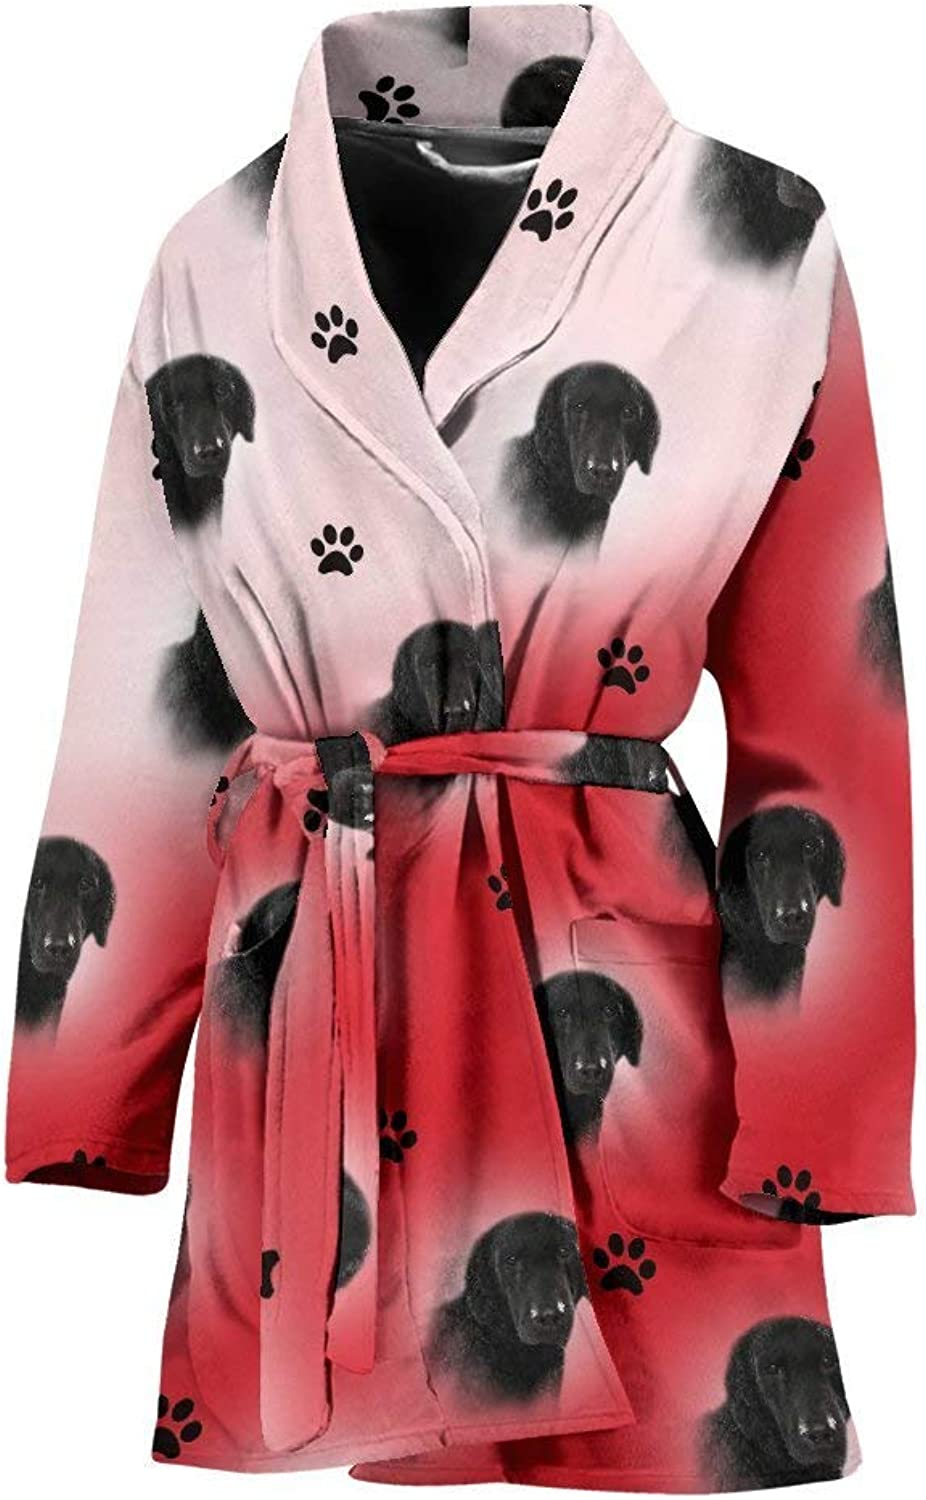 Amazing CurlyCoated Retriever Dog Print On Red White Women's Bath Robe